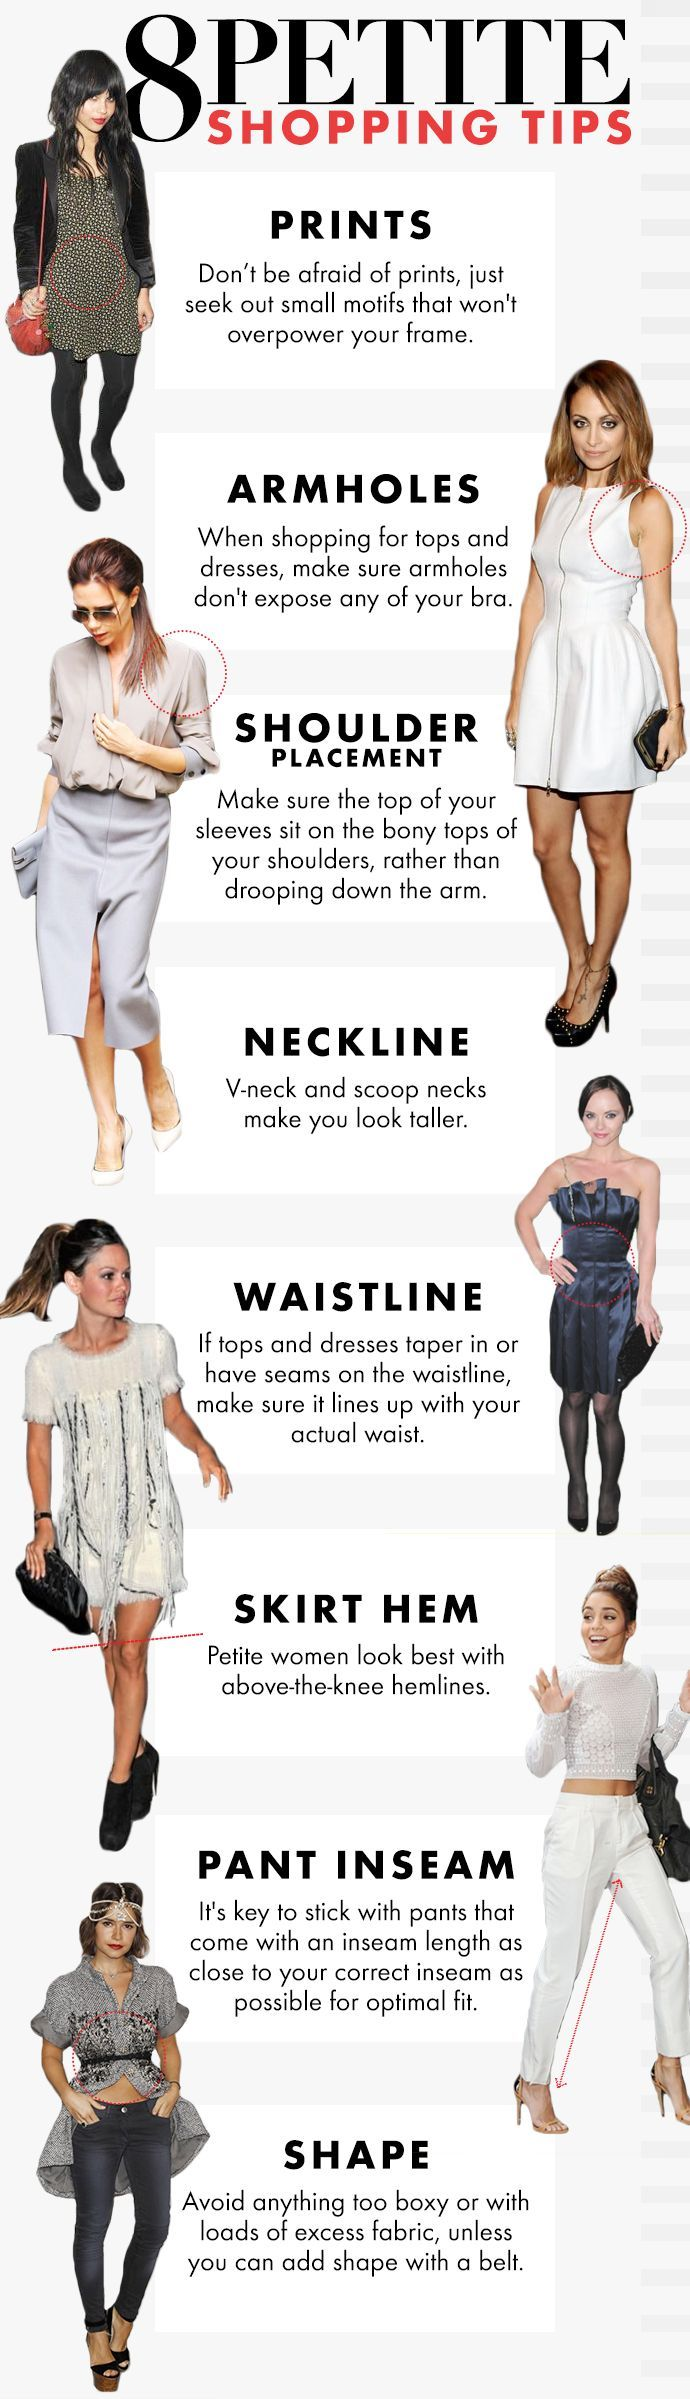 8 Petite Shopping Tips: How To Shop For Petite Clothes with example looks from your favorite stars!